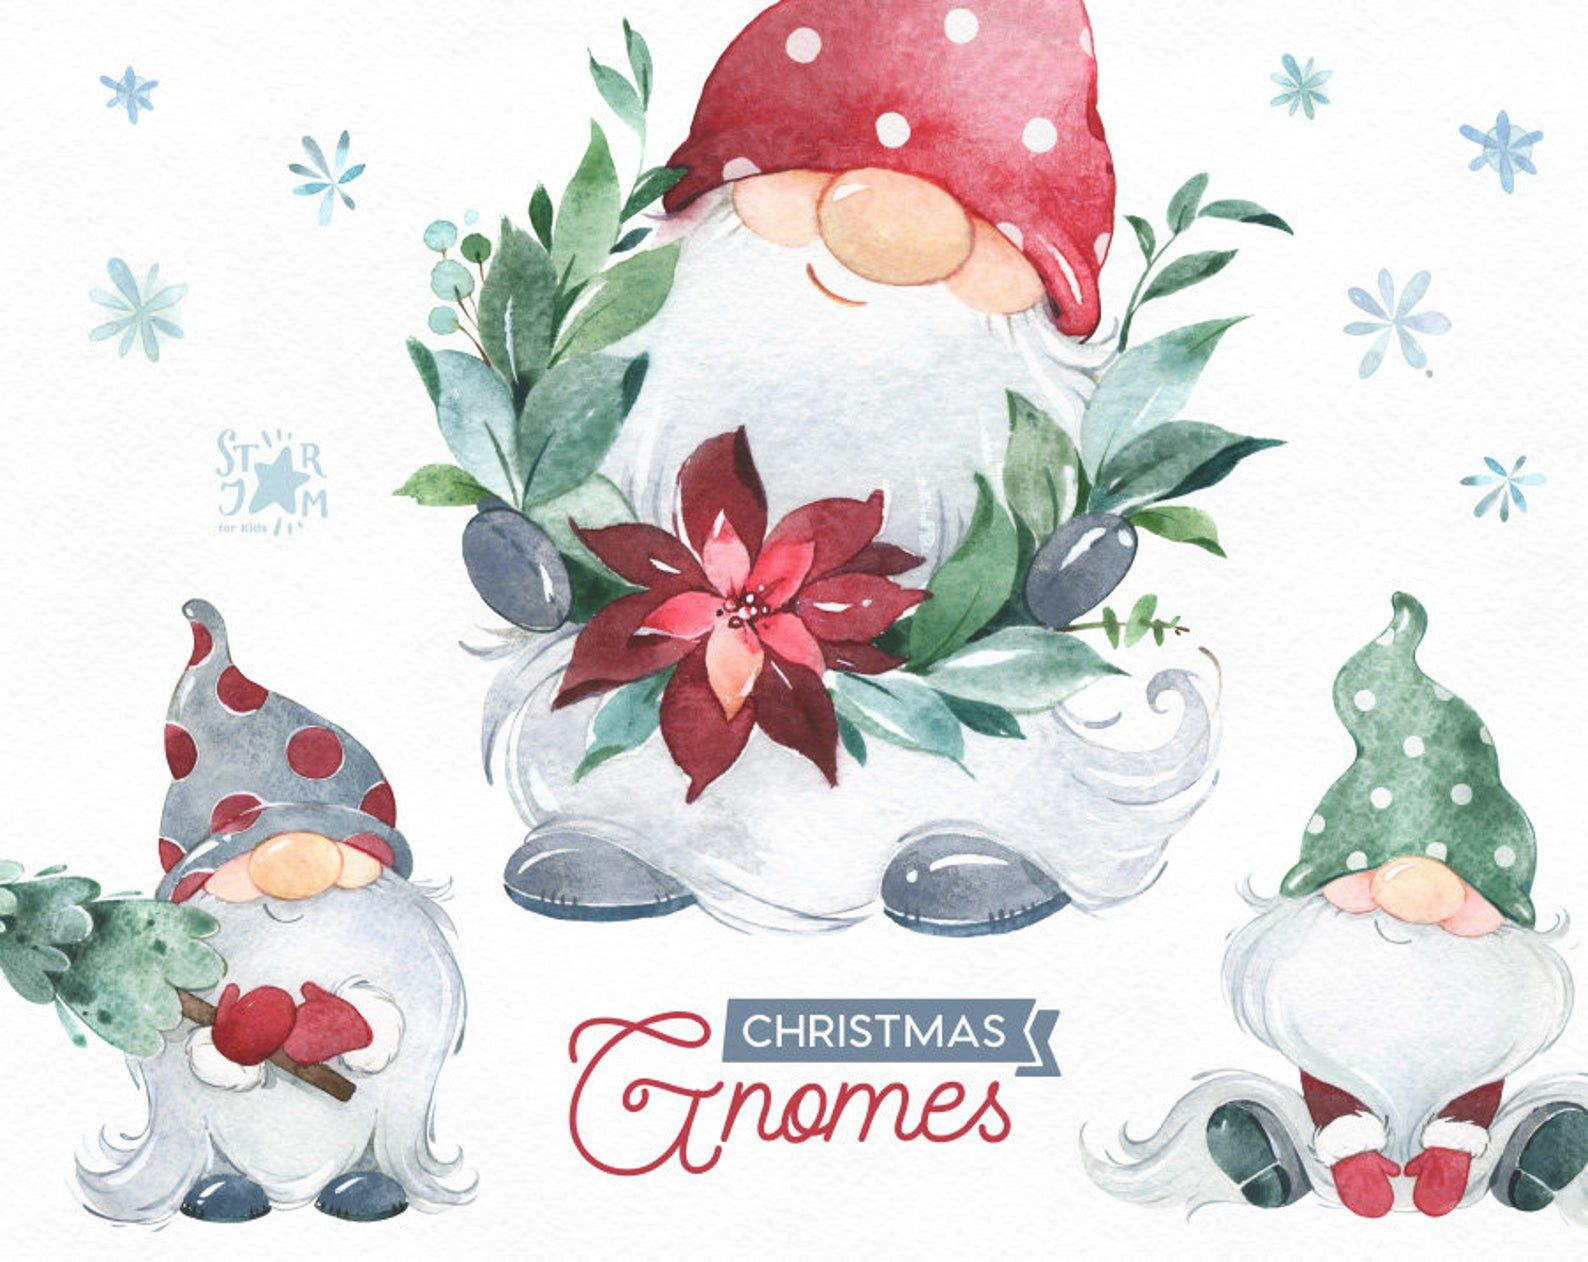 Christmas Gnomes Watercolor Clipart Nordic Scandinavian Etsy In 2020 Christmas Gnome Nordic Gnomes Christmas Paintings